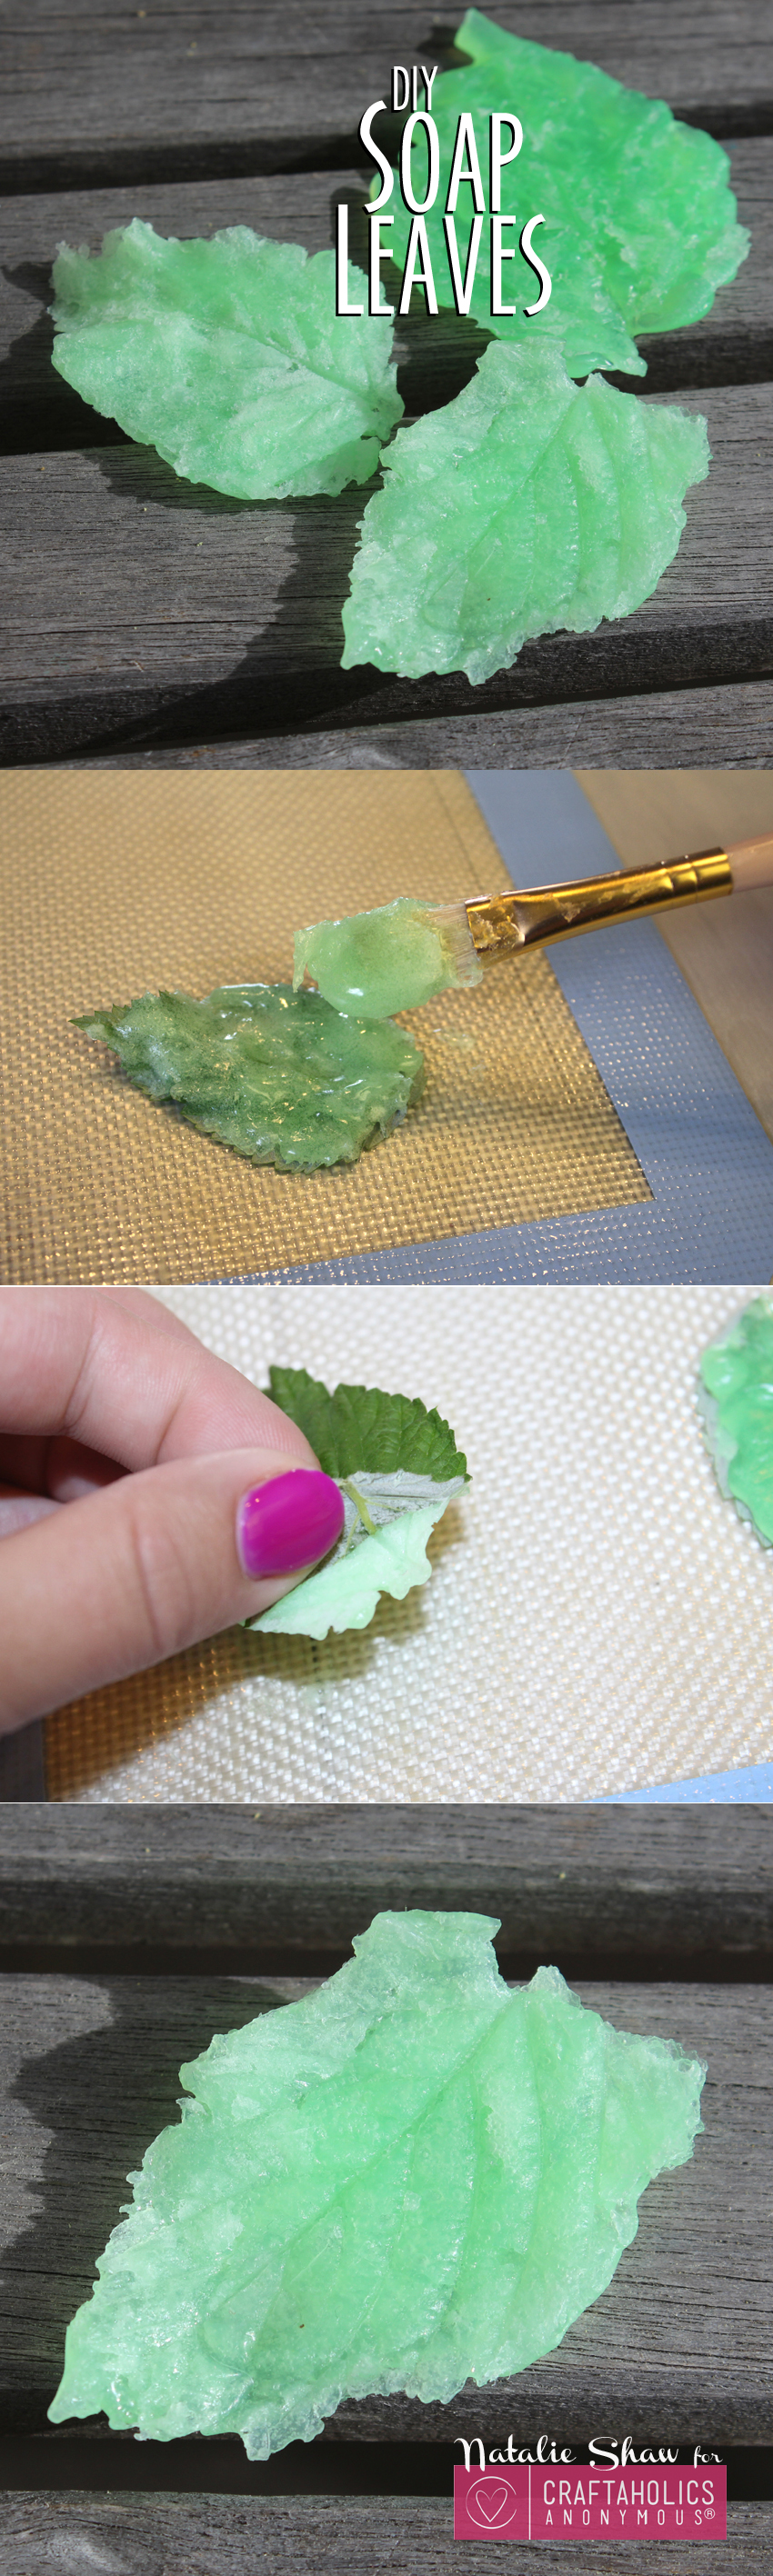 DIY Soap Leaves